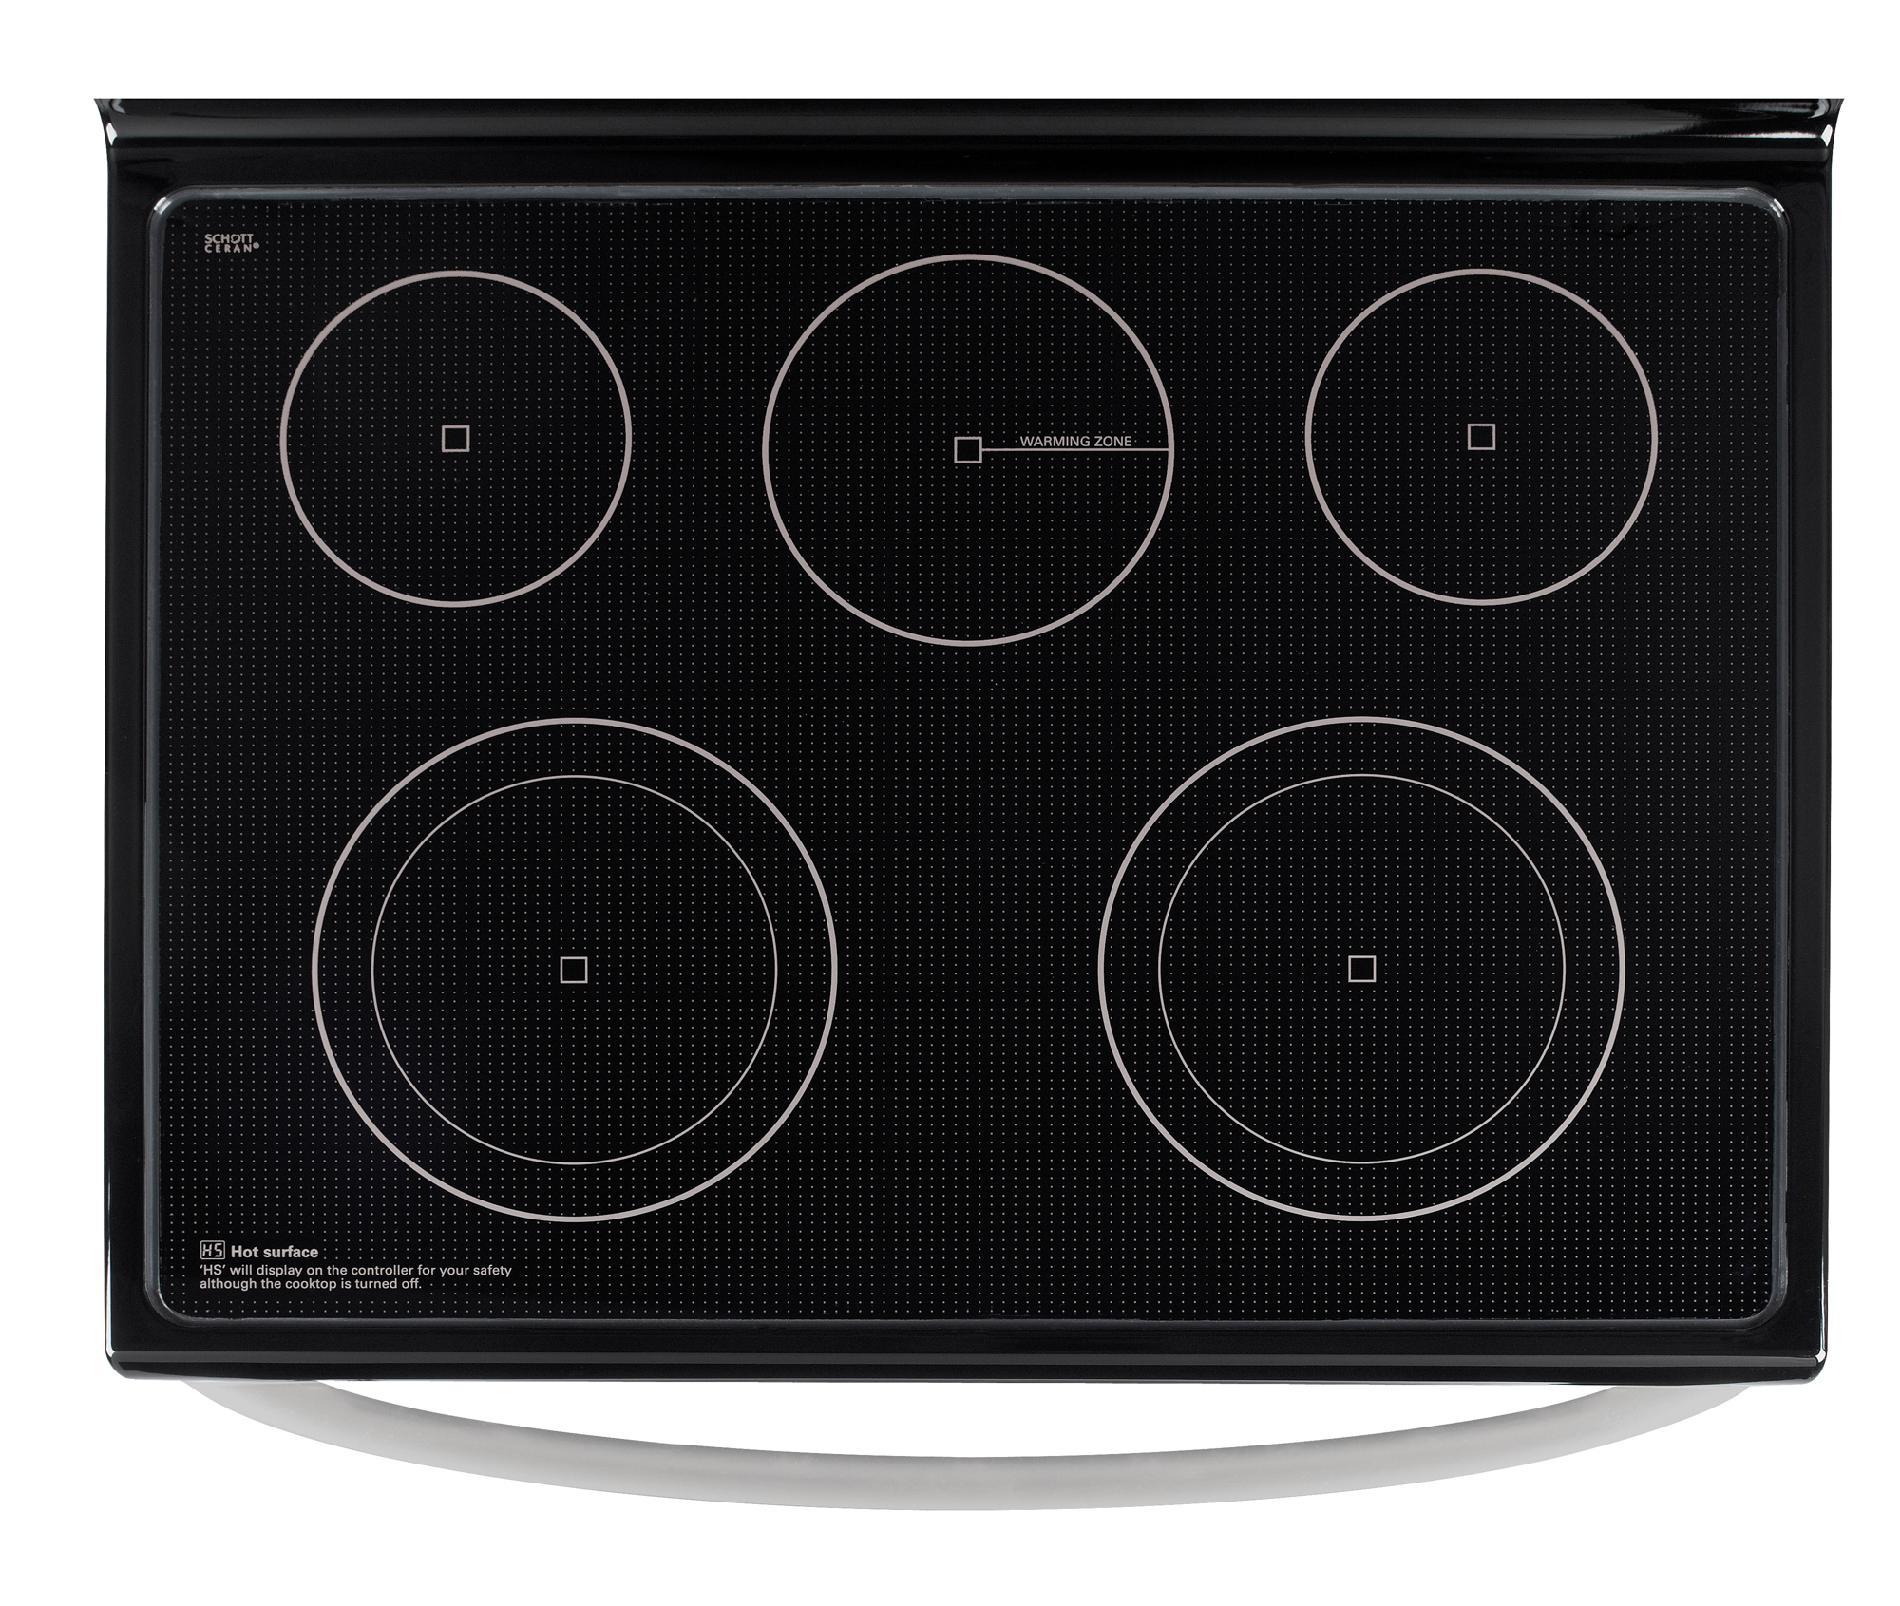 LG LRE3085ST 6.3 cu. ft. Electric Range - Stainless Steel